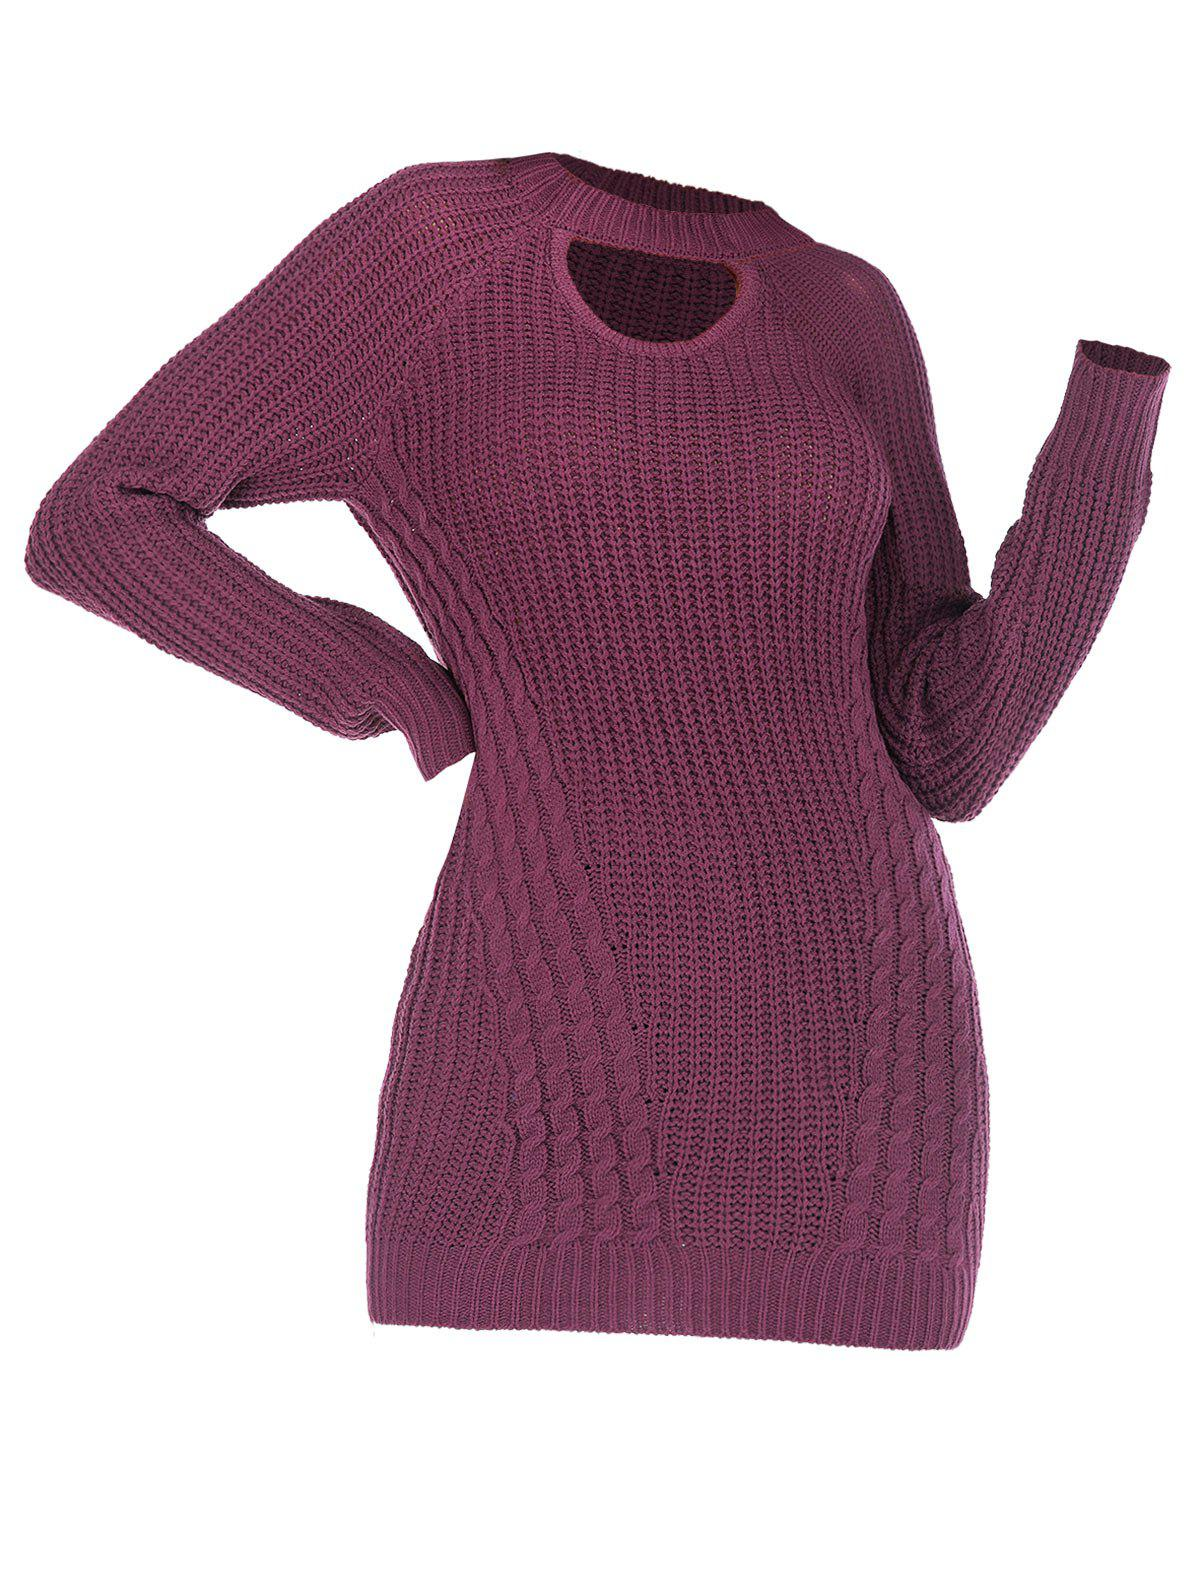 Best Cutout Cable Knit Raglan Sleeve Sweater